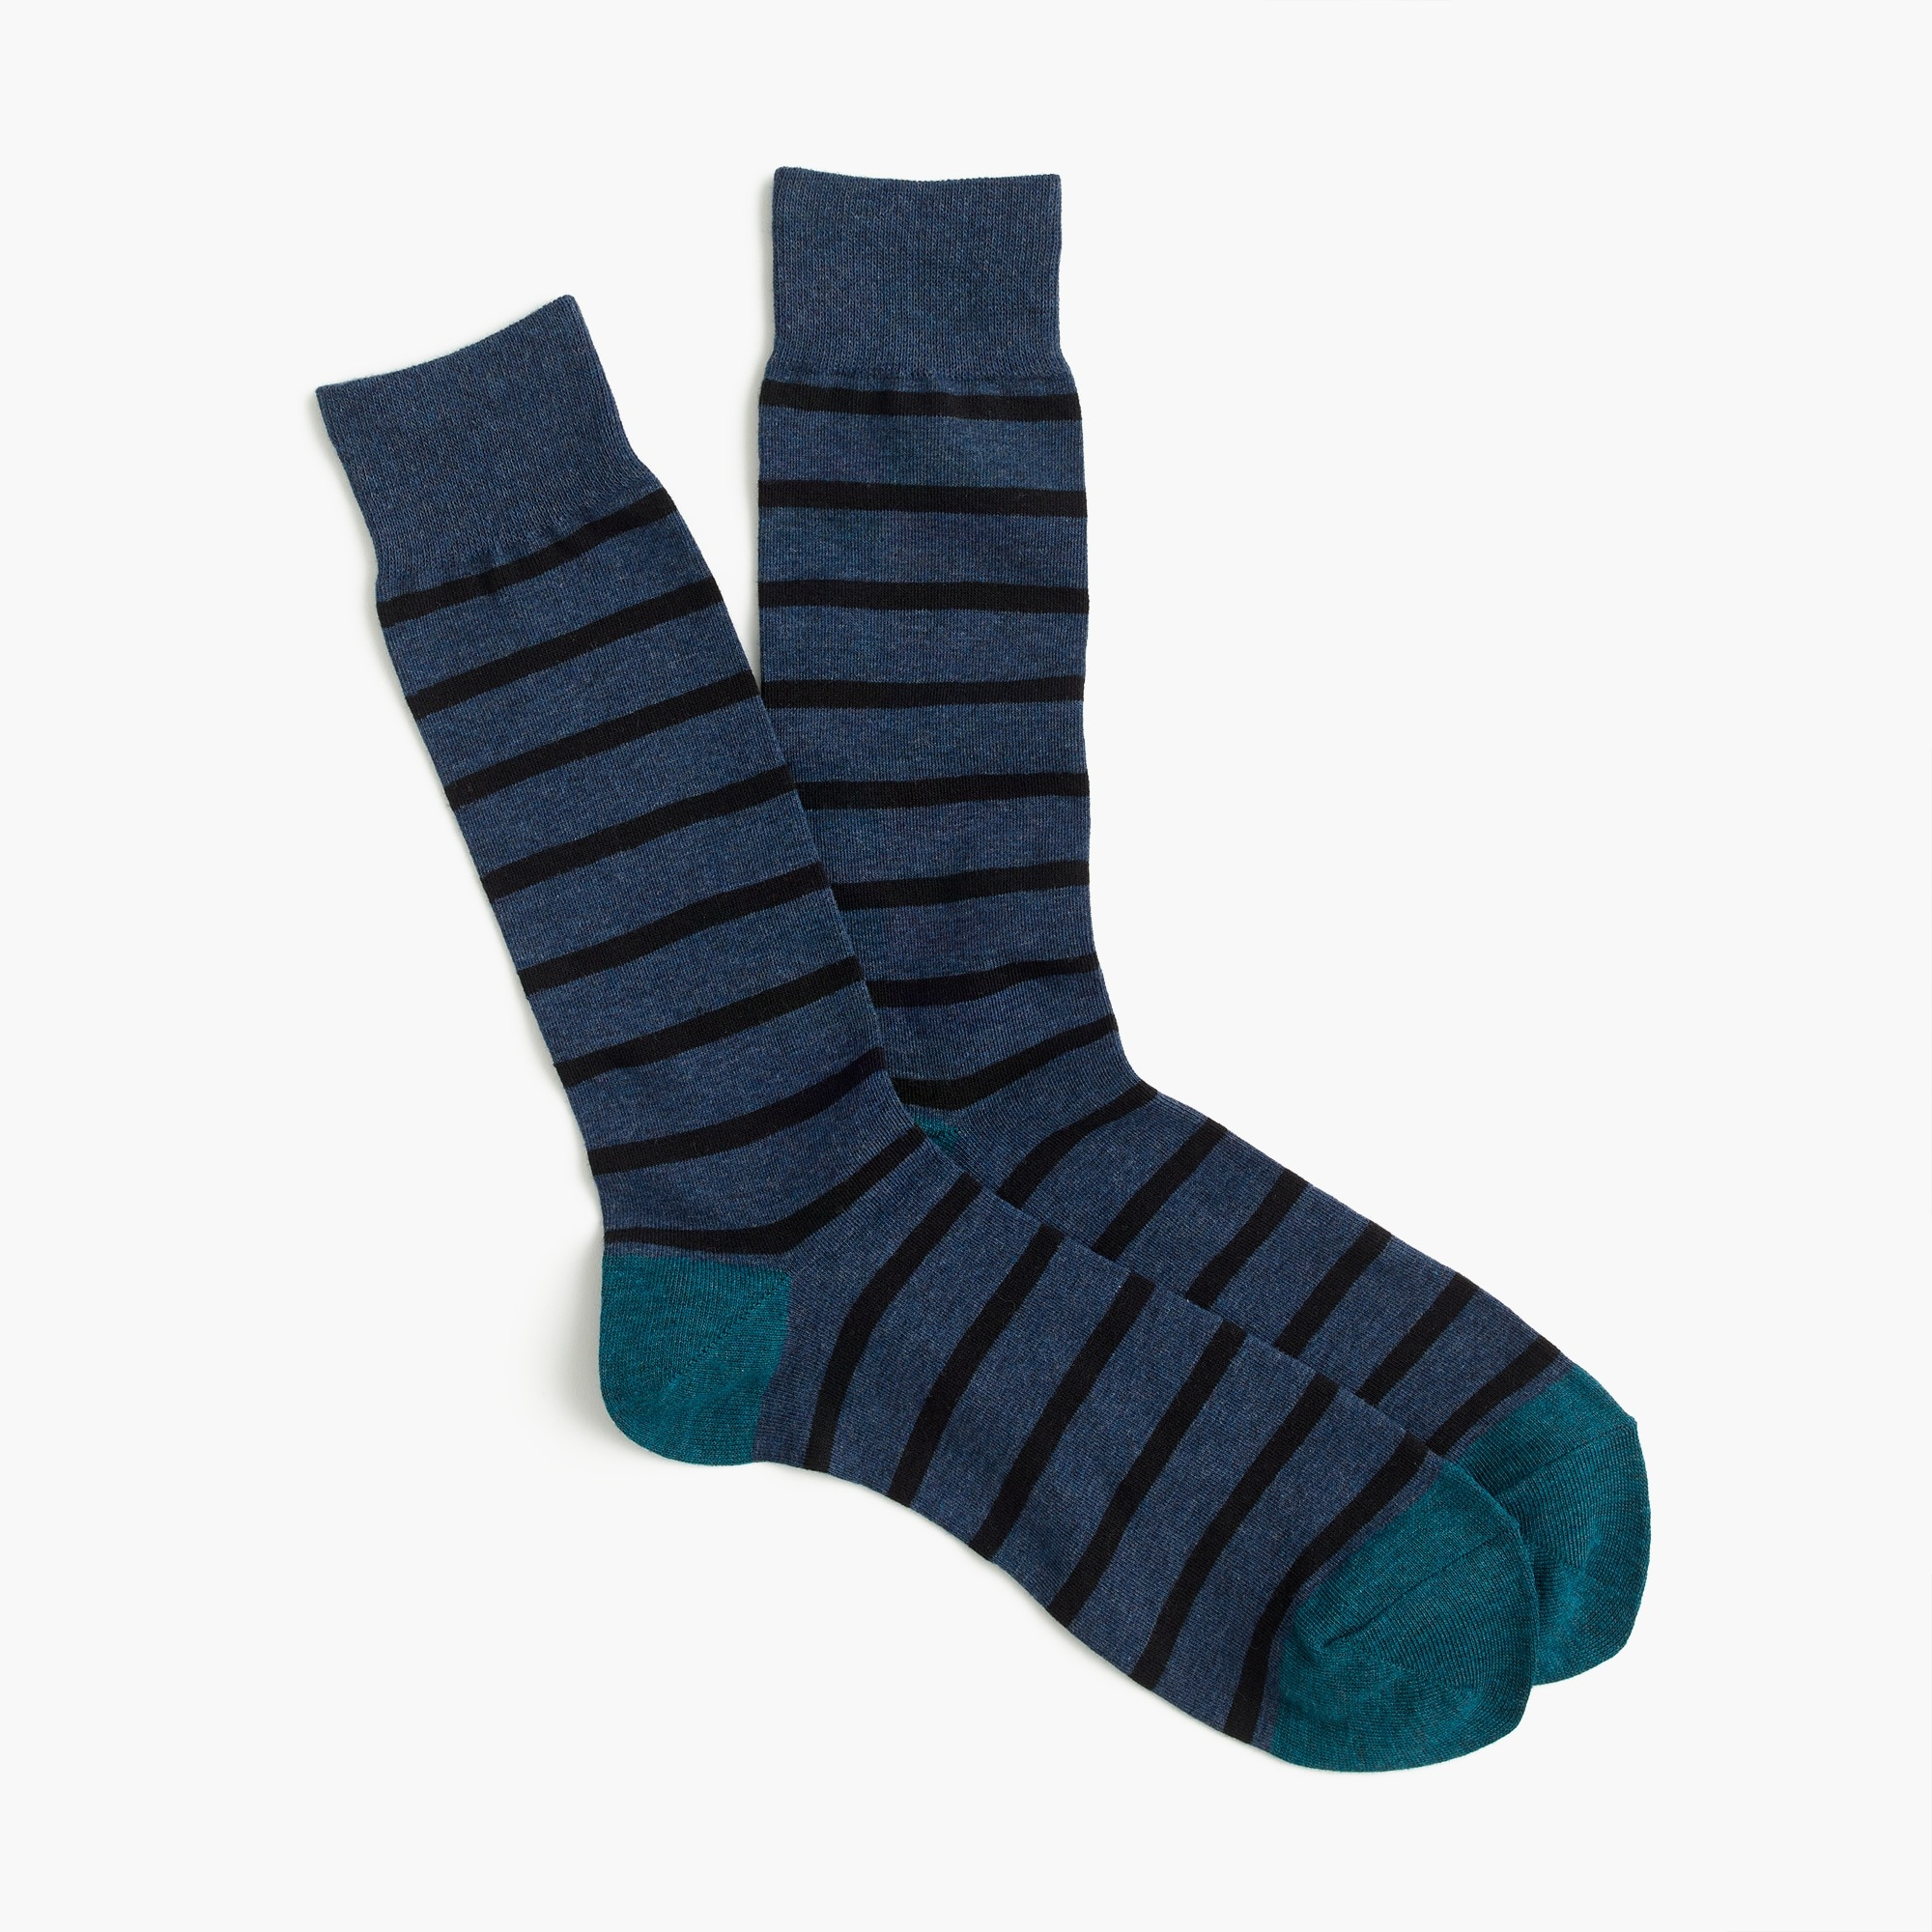 men's narrow striped socks - men's accessories